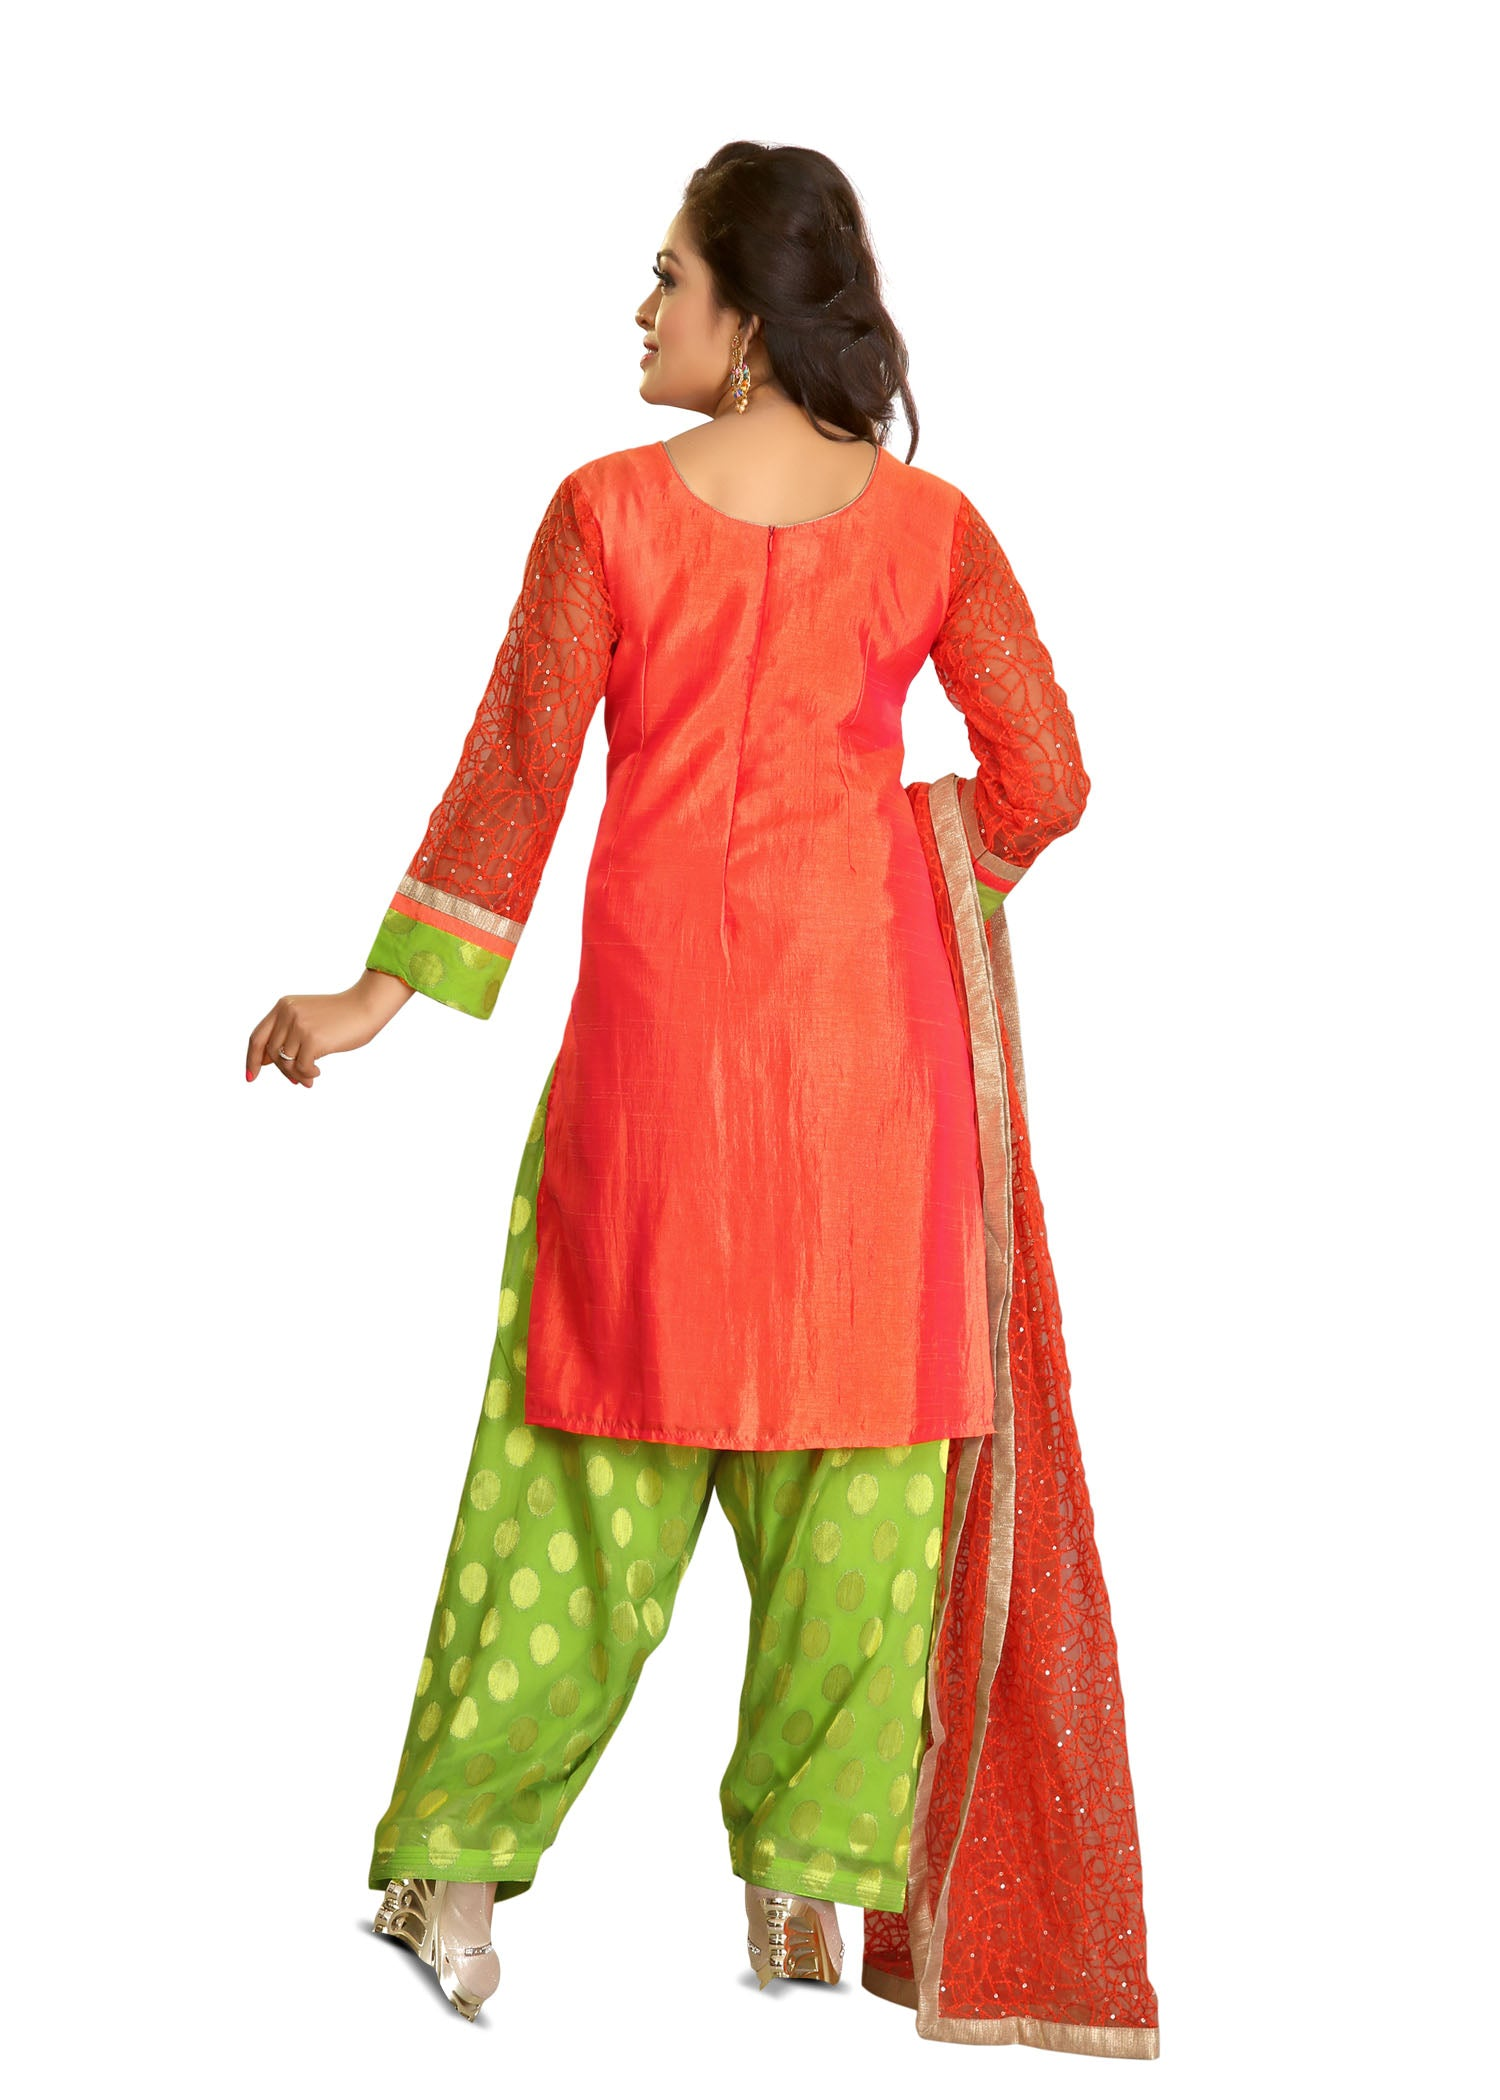 Patiala Suit with contrast thread embroidery/Tomato Red